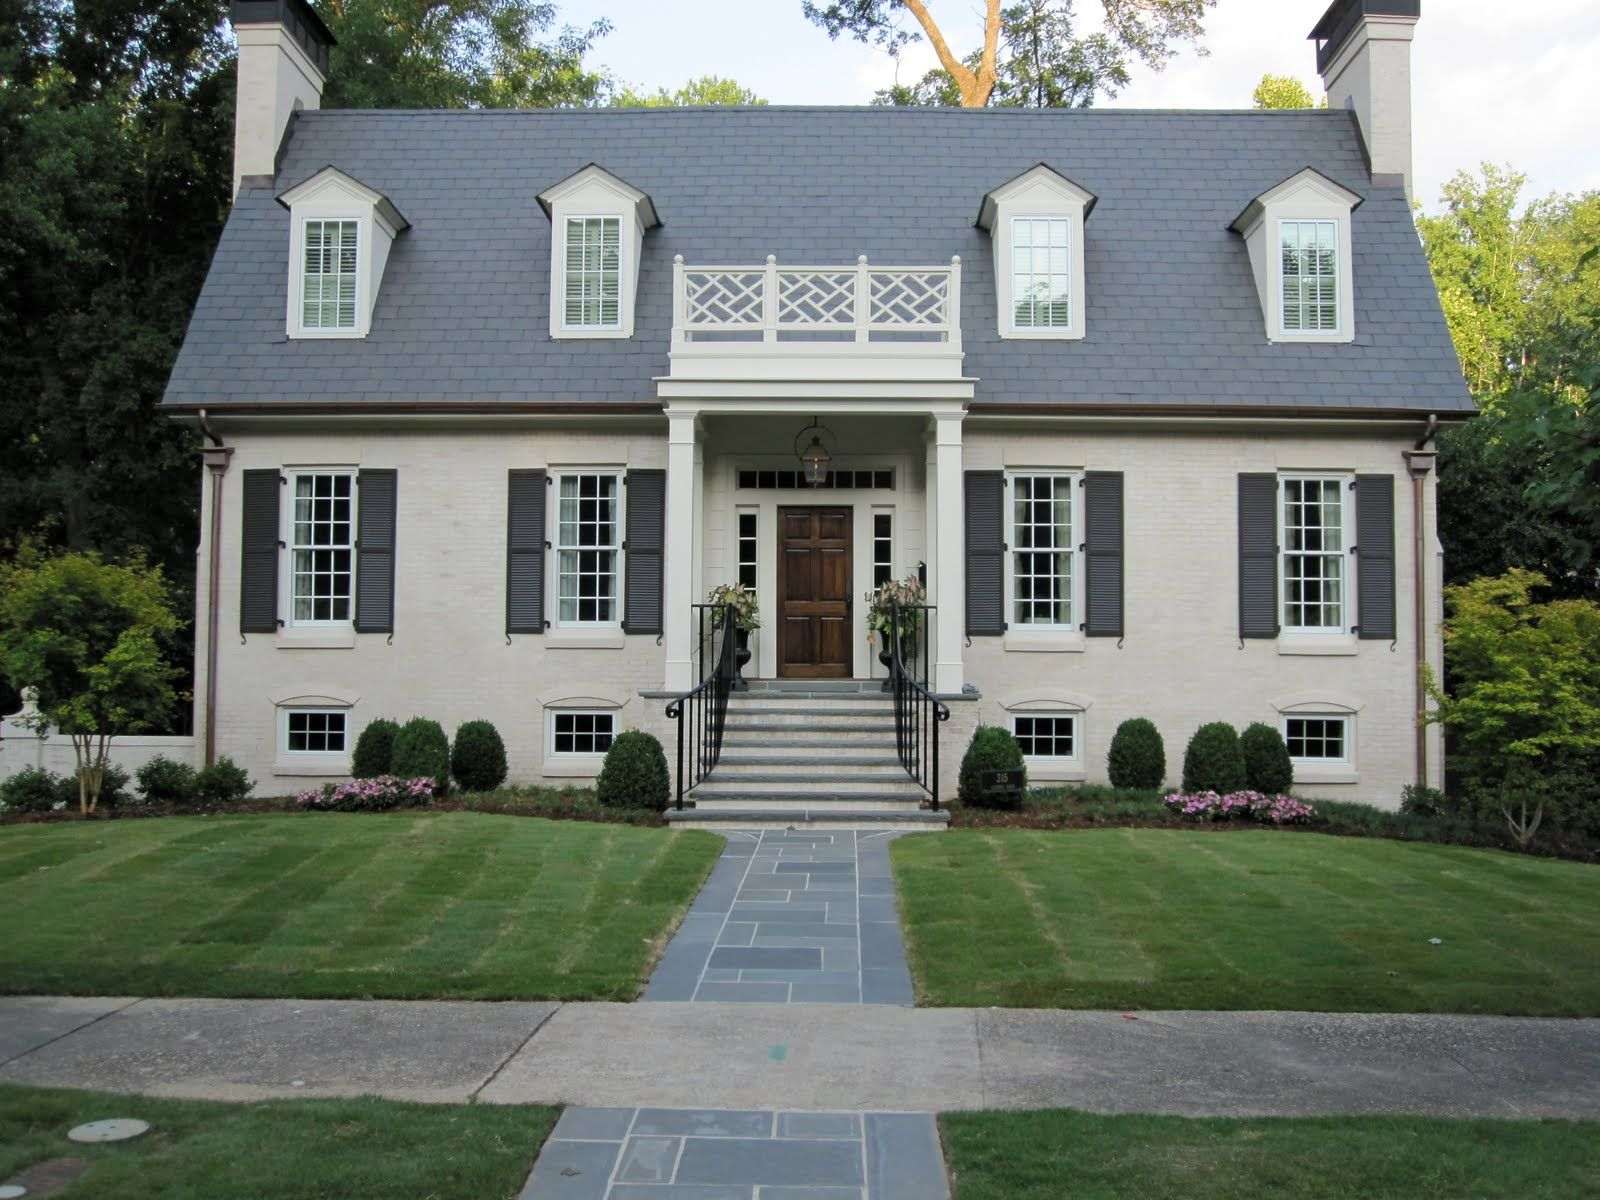 Exterior house color schemes with black shutters - Shutter Colors